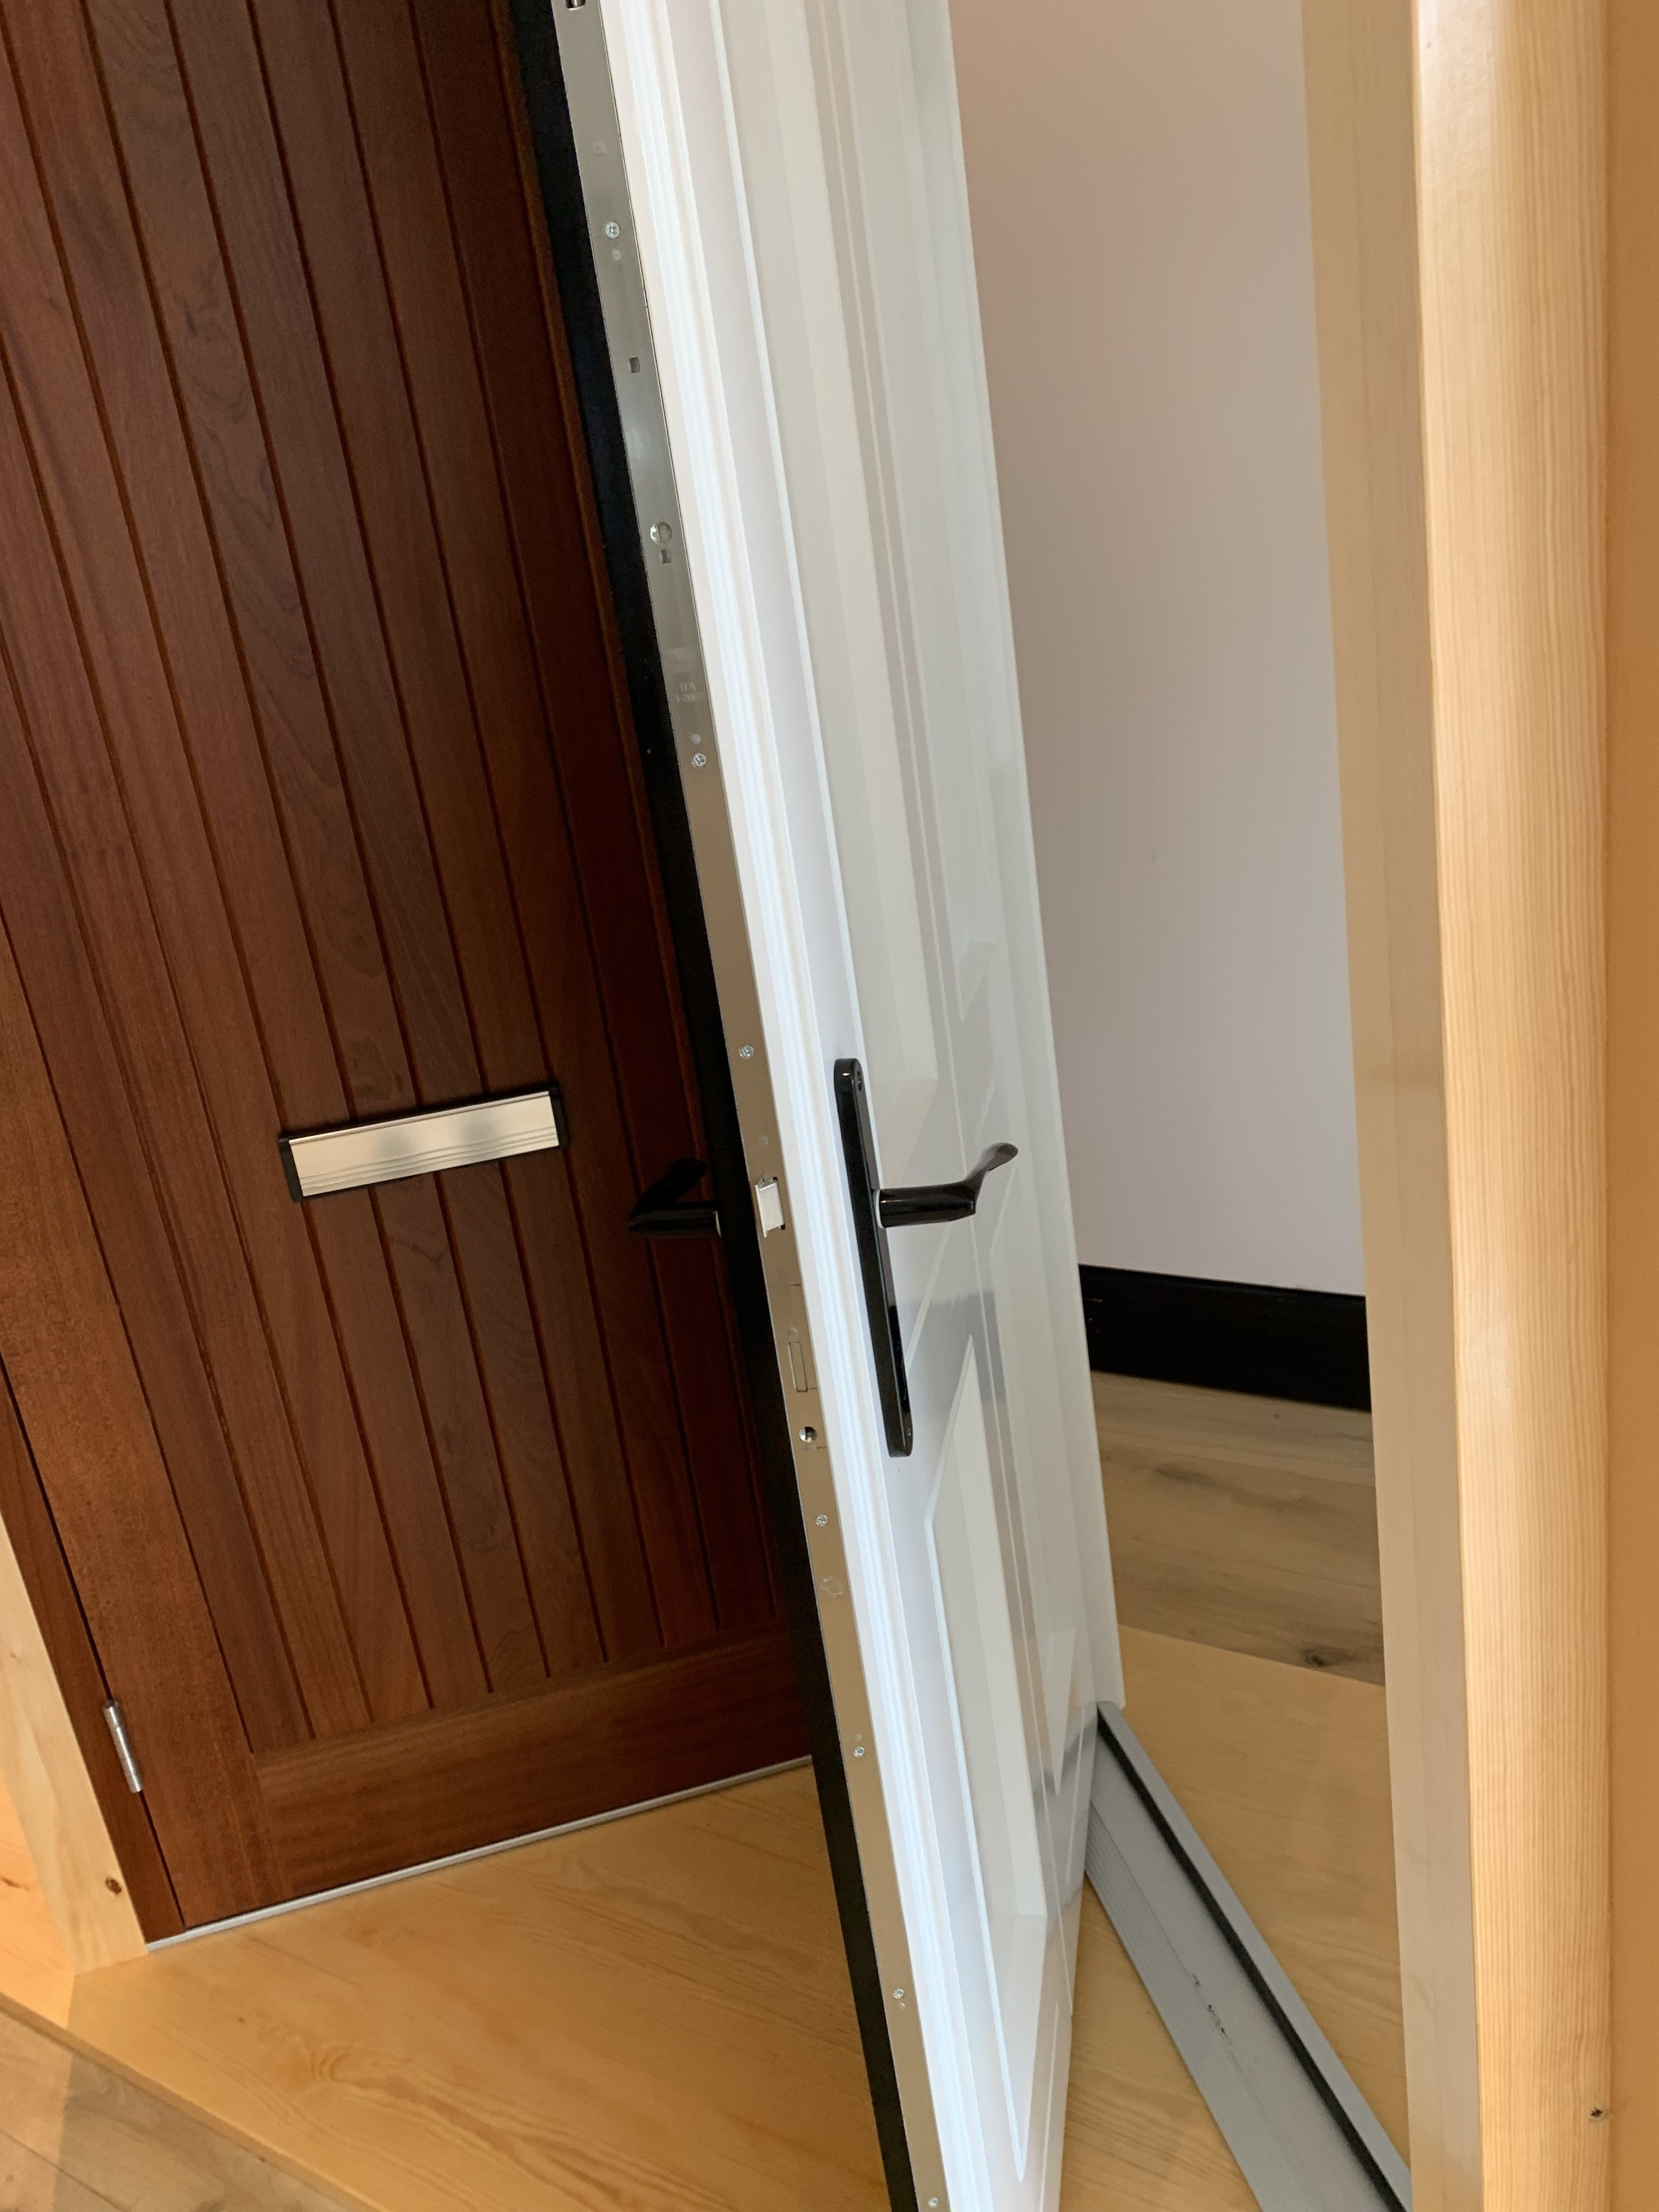 Four panel hardwood front door, factory fully finished in two colours - inside white and outside black. Multi point lock.